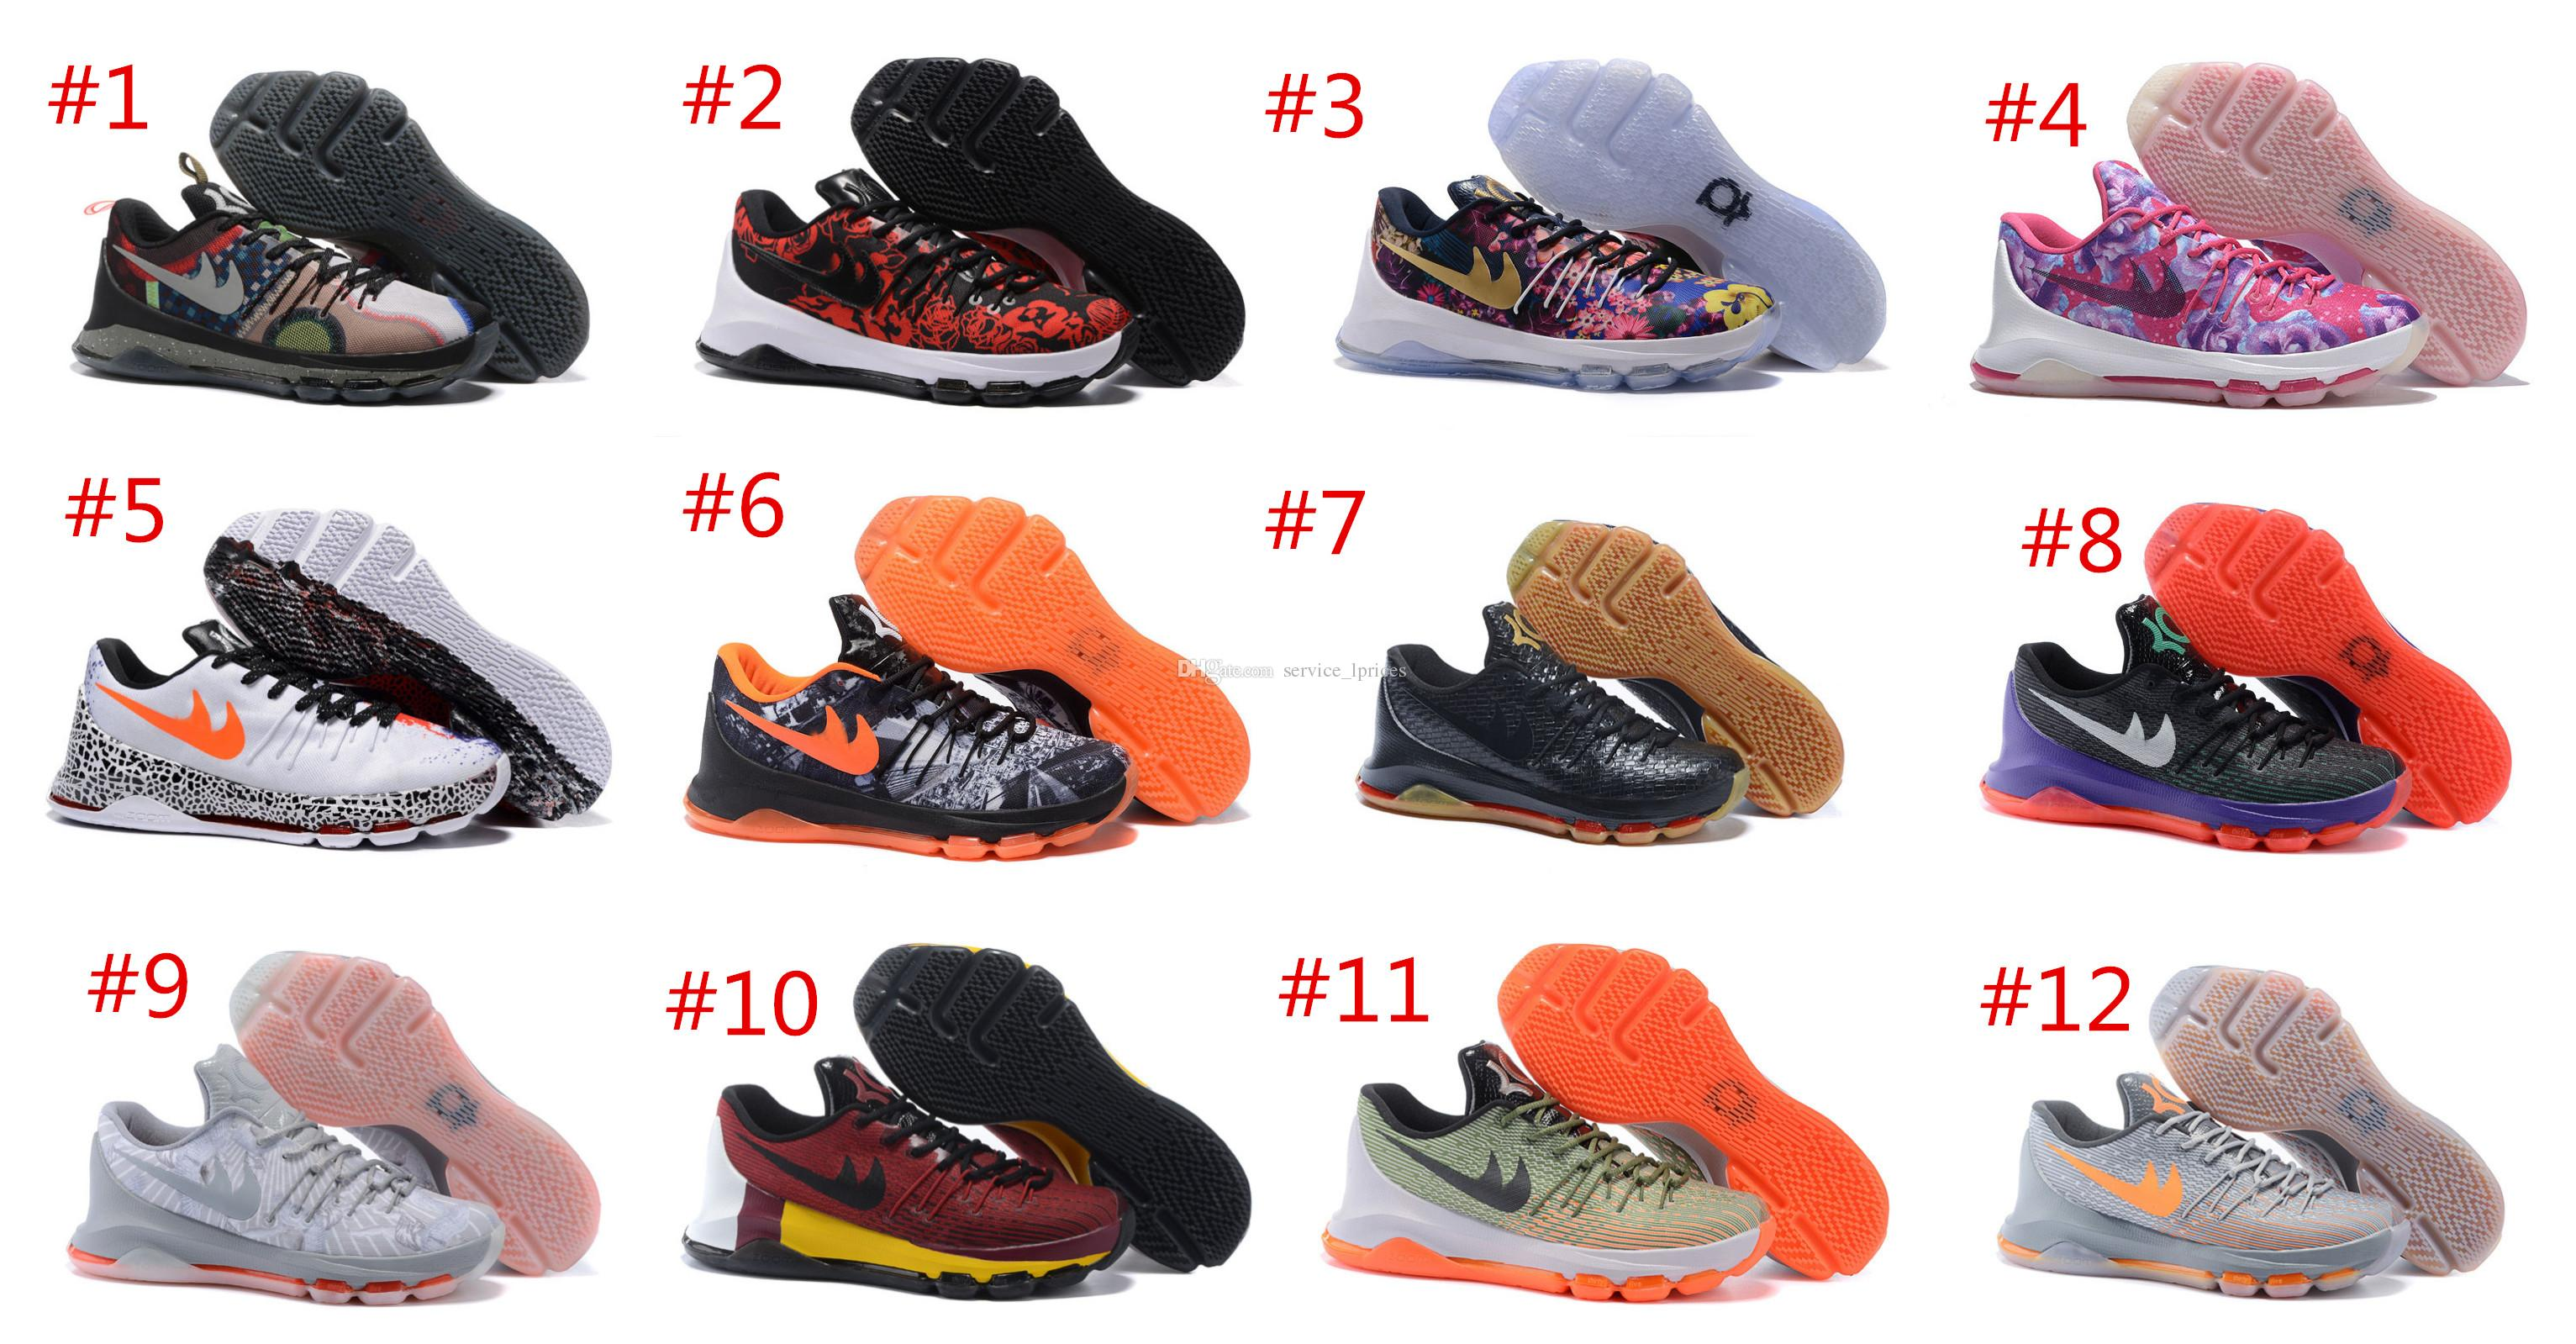 kd shoes 1 to 10 Kevin Durant shoes on sale